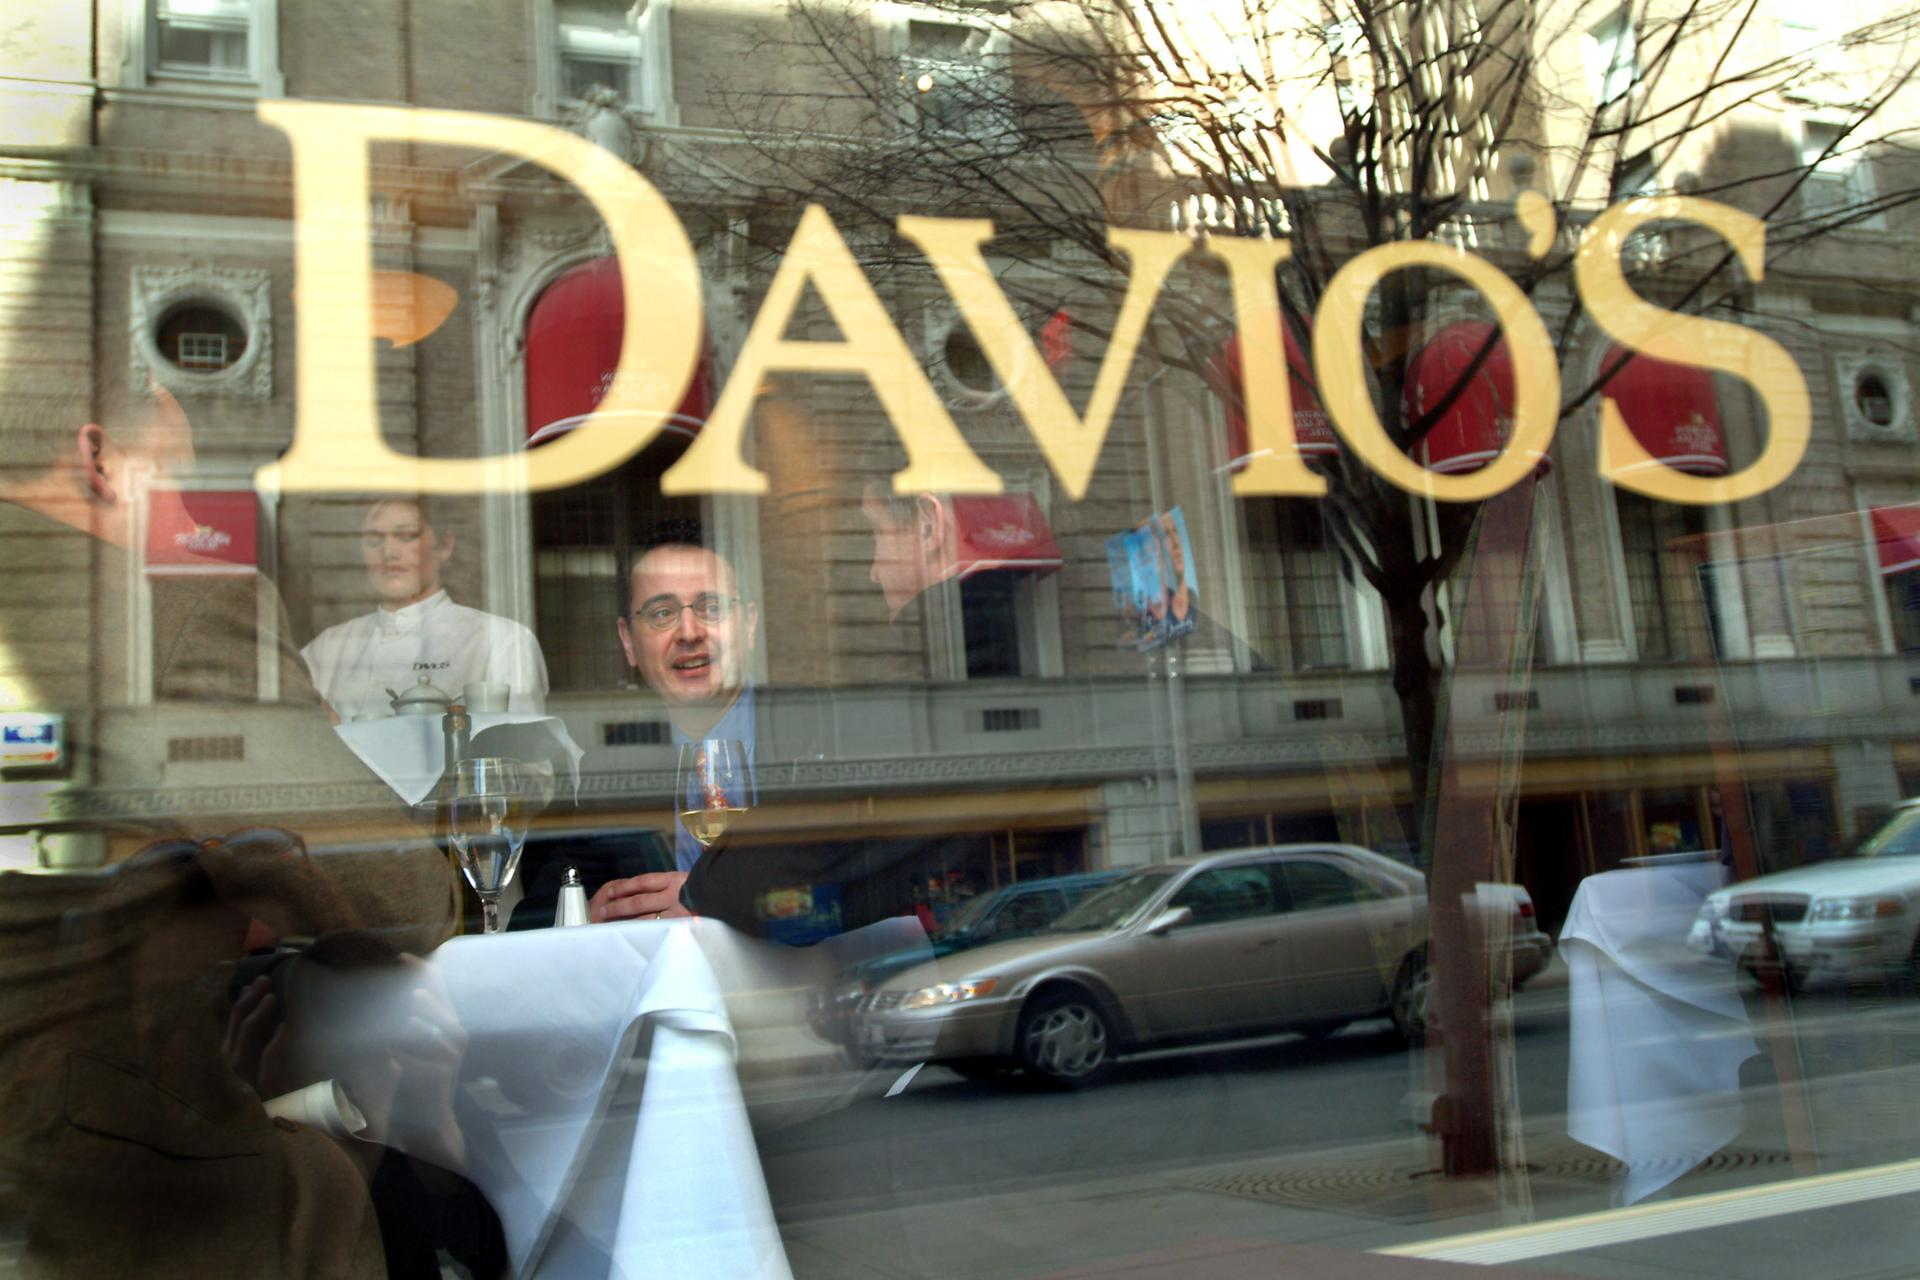 power meals are where boston s power players fuel up the boston davio s restaurant